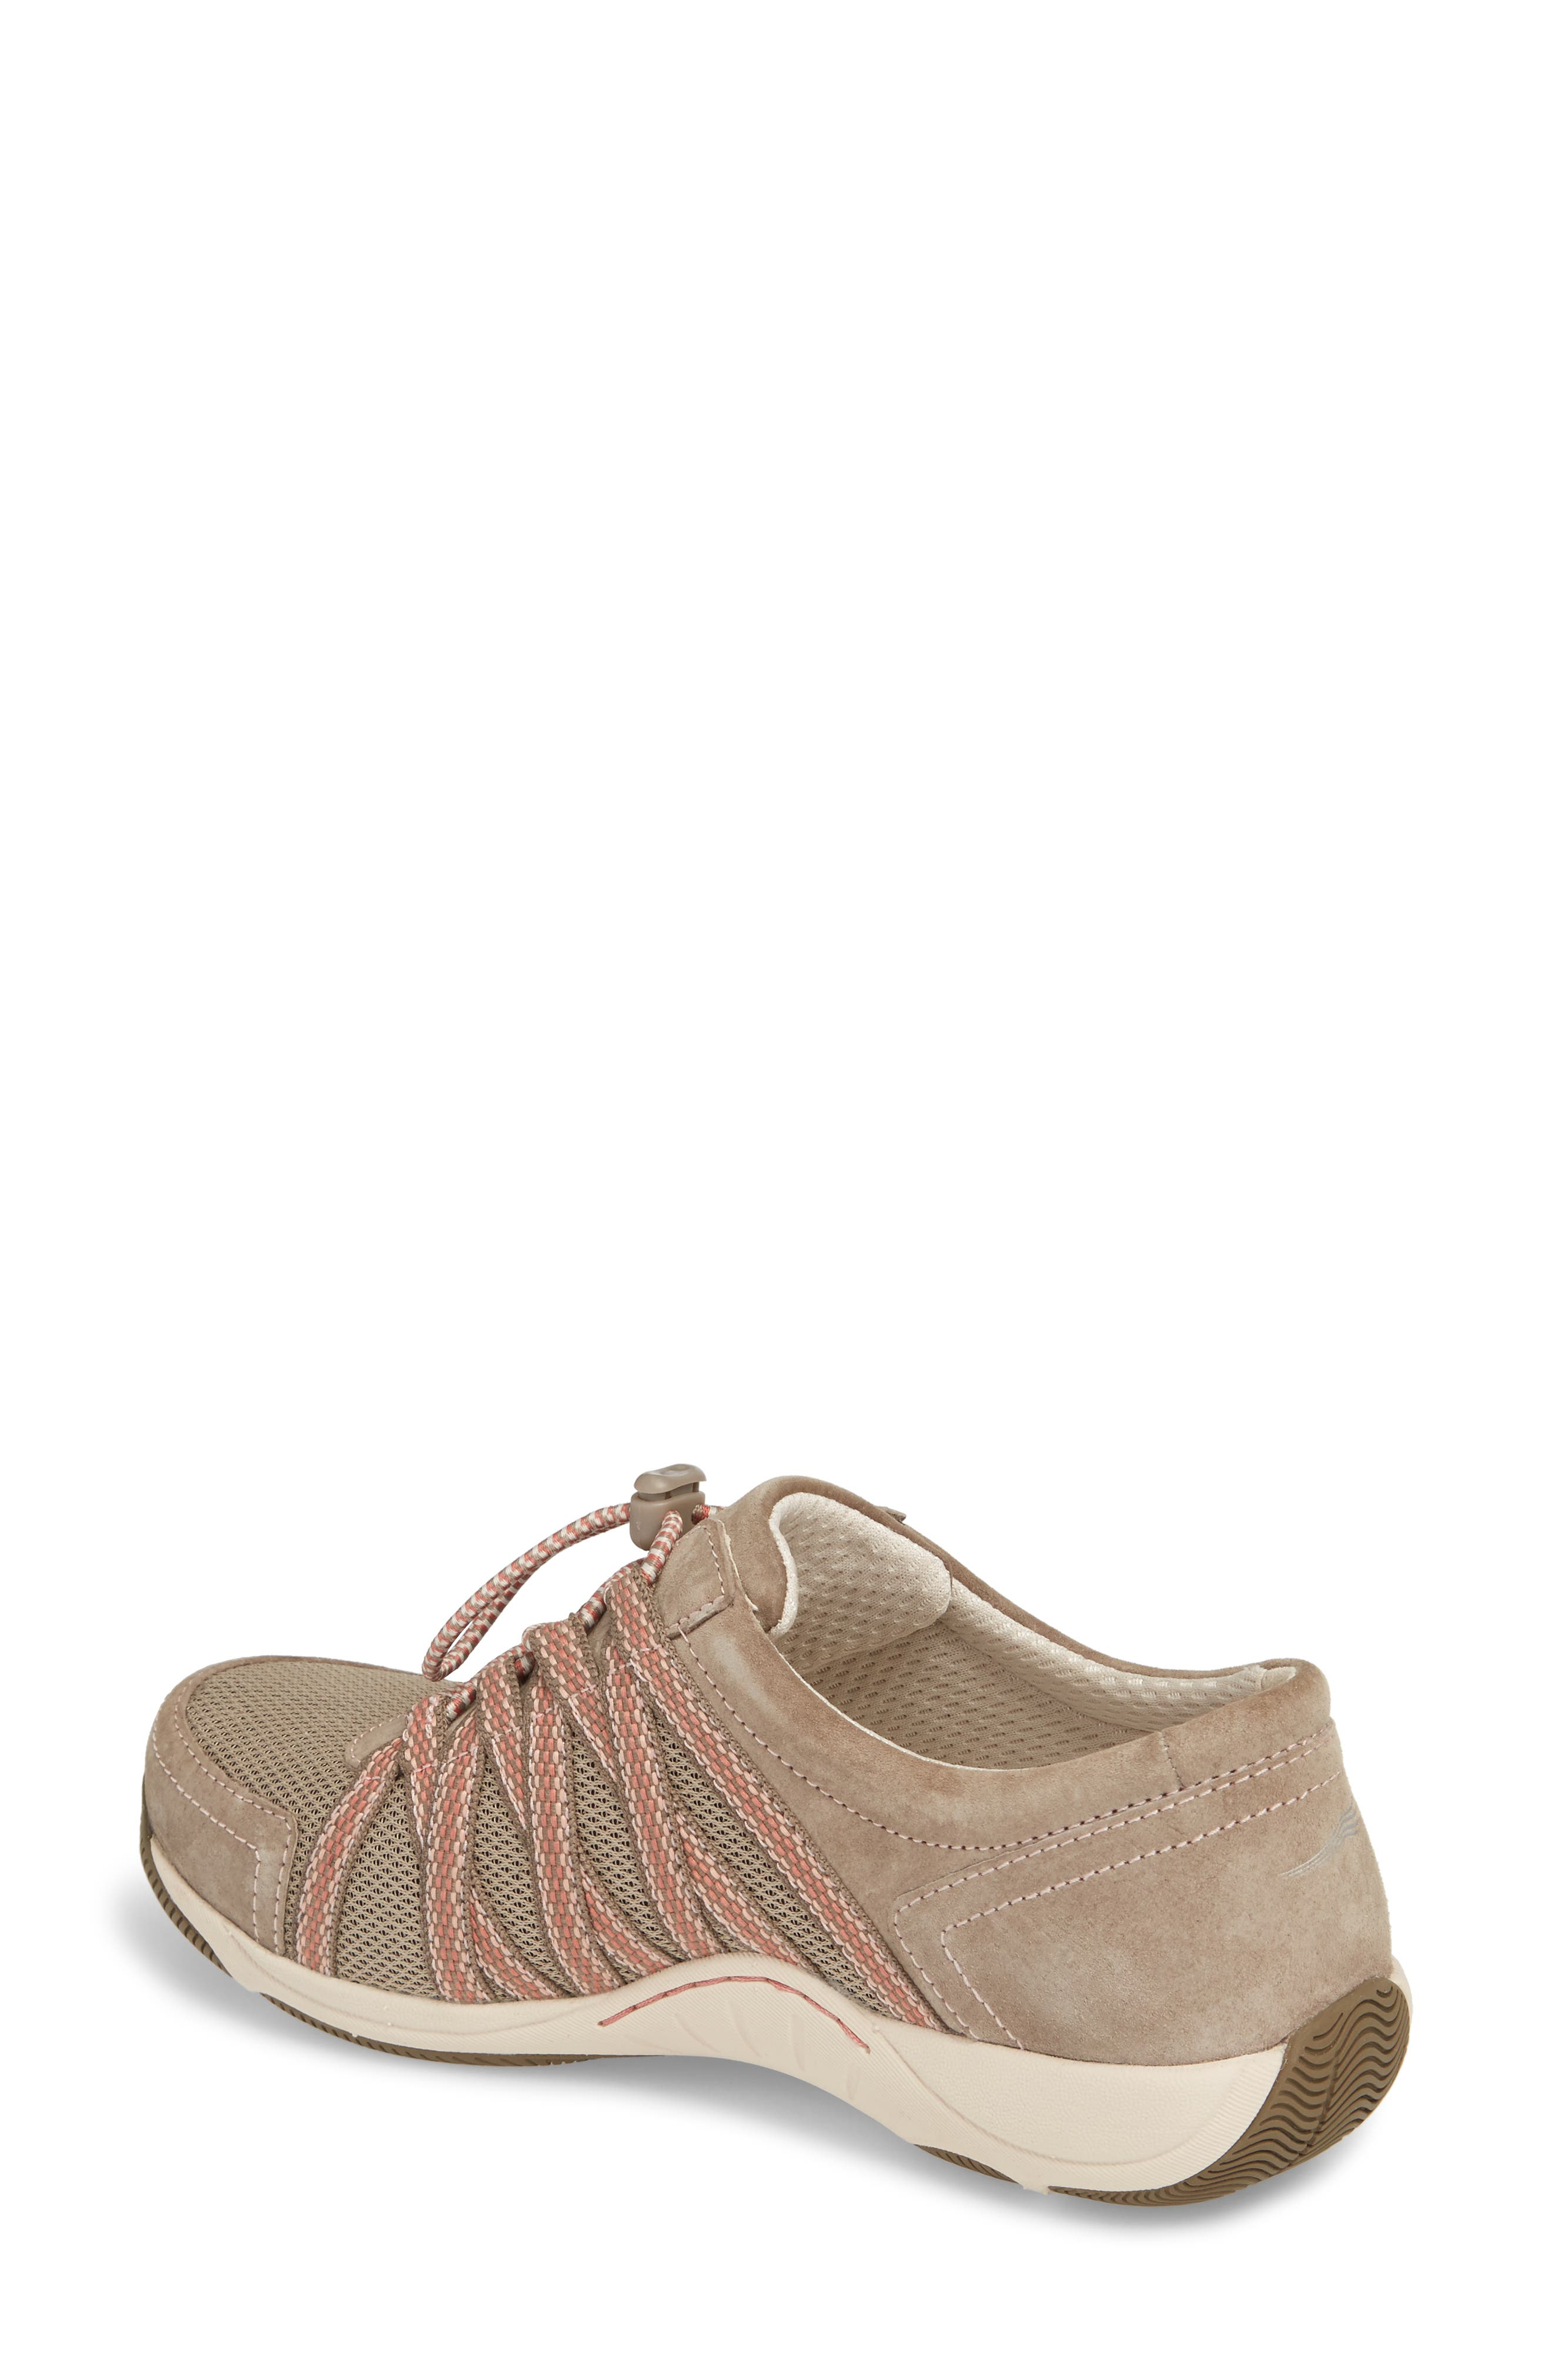 Halifax Collection Honor Sneaker,                             Alternate thumbnail 2, color,                             Walnut Suede